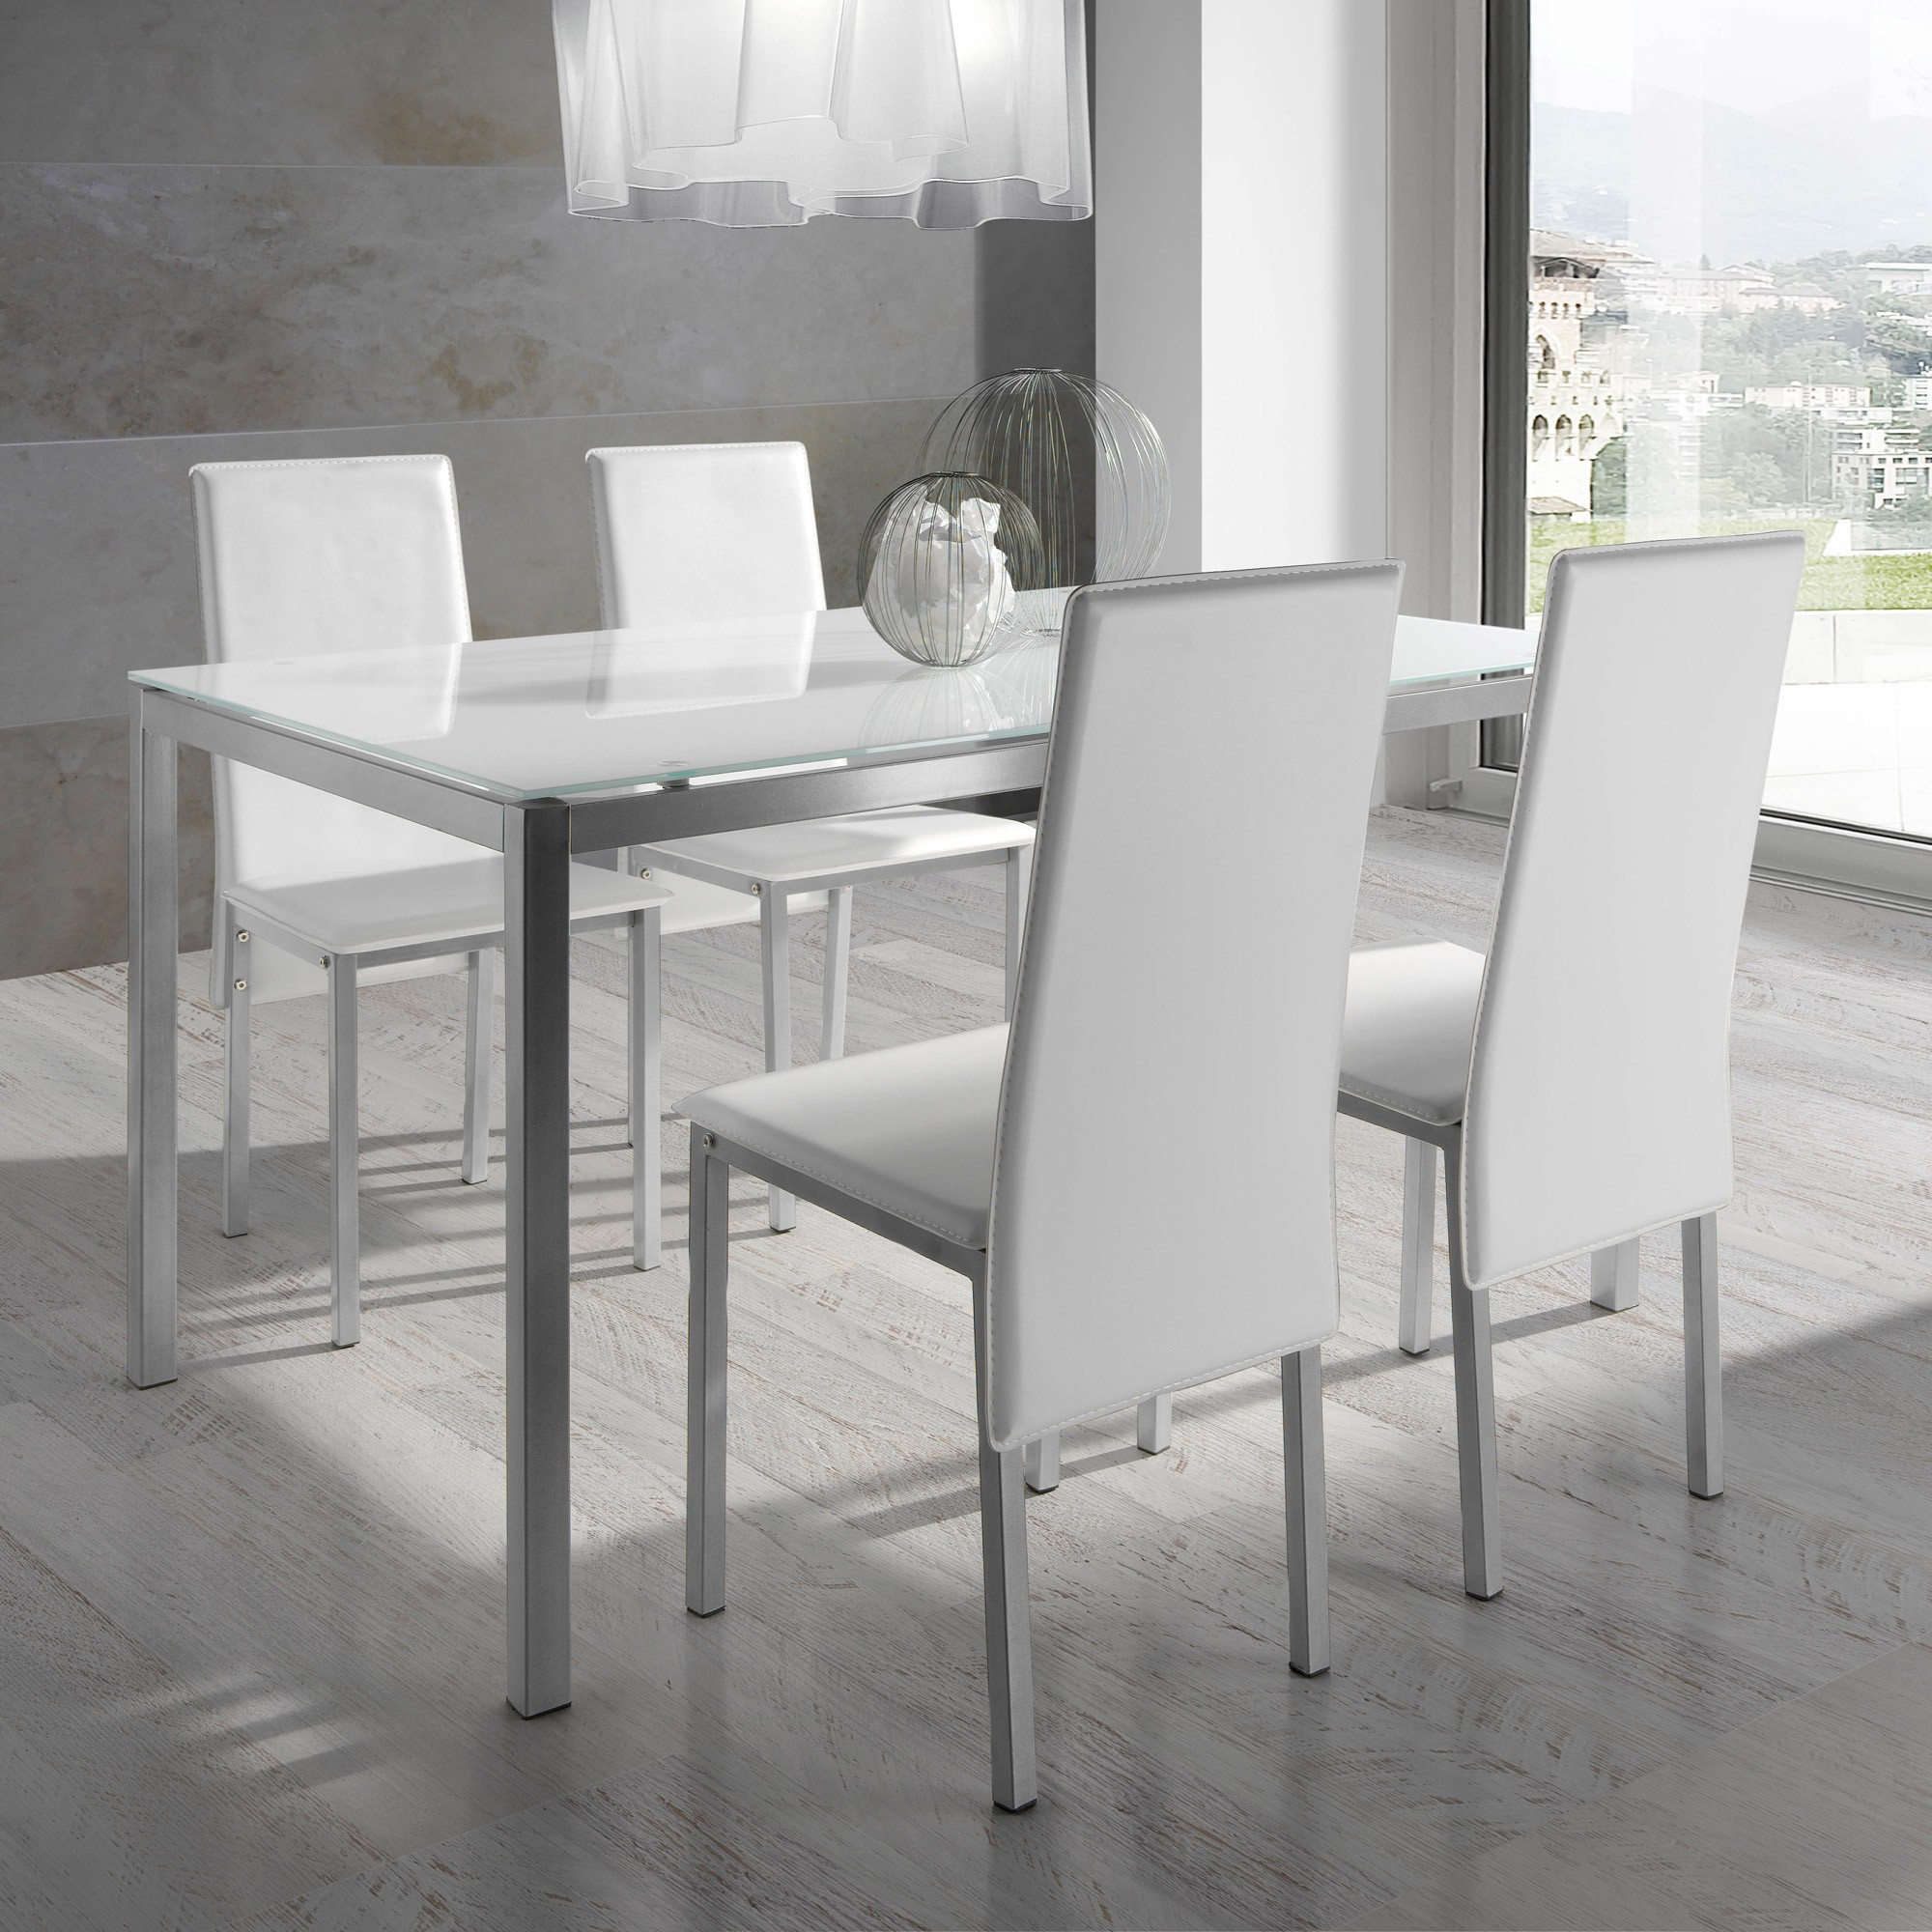 Ensemble table et chaise salle a manger but chaise for Chaise moderne de salle a manger